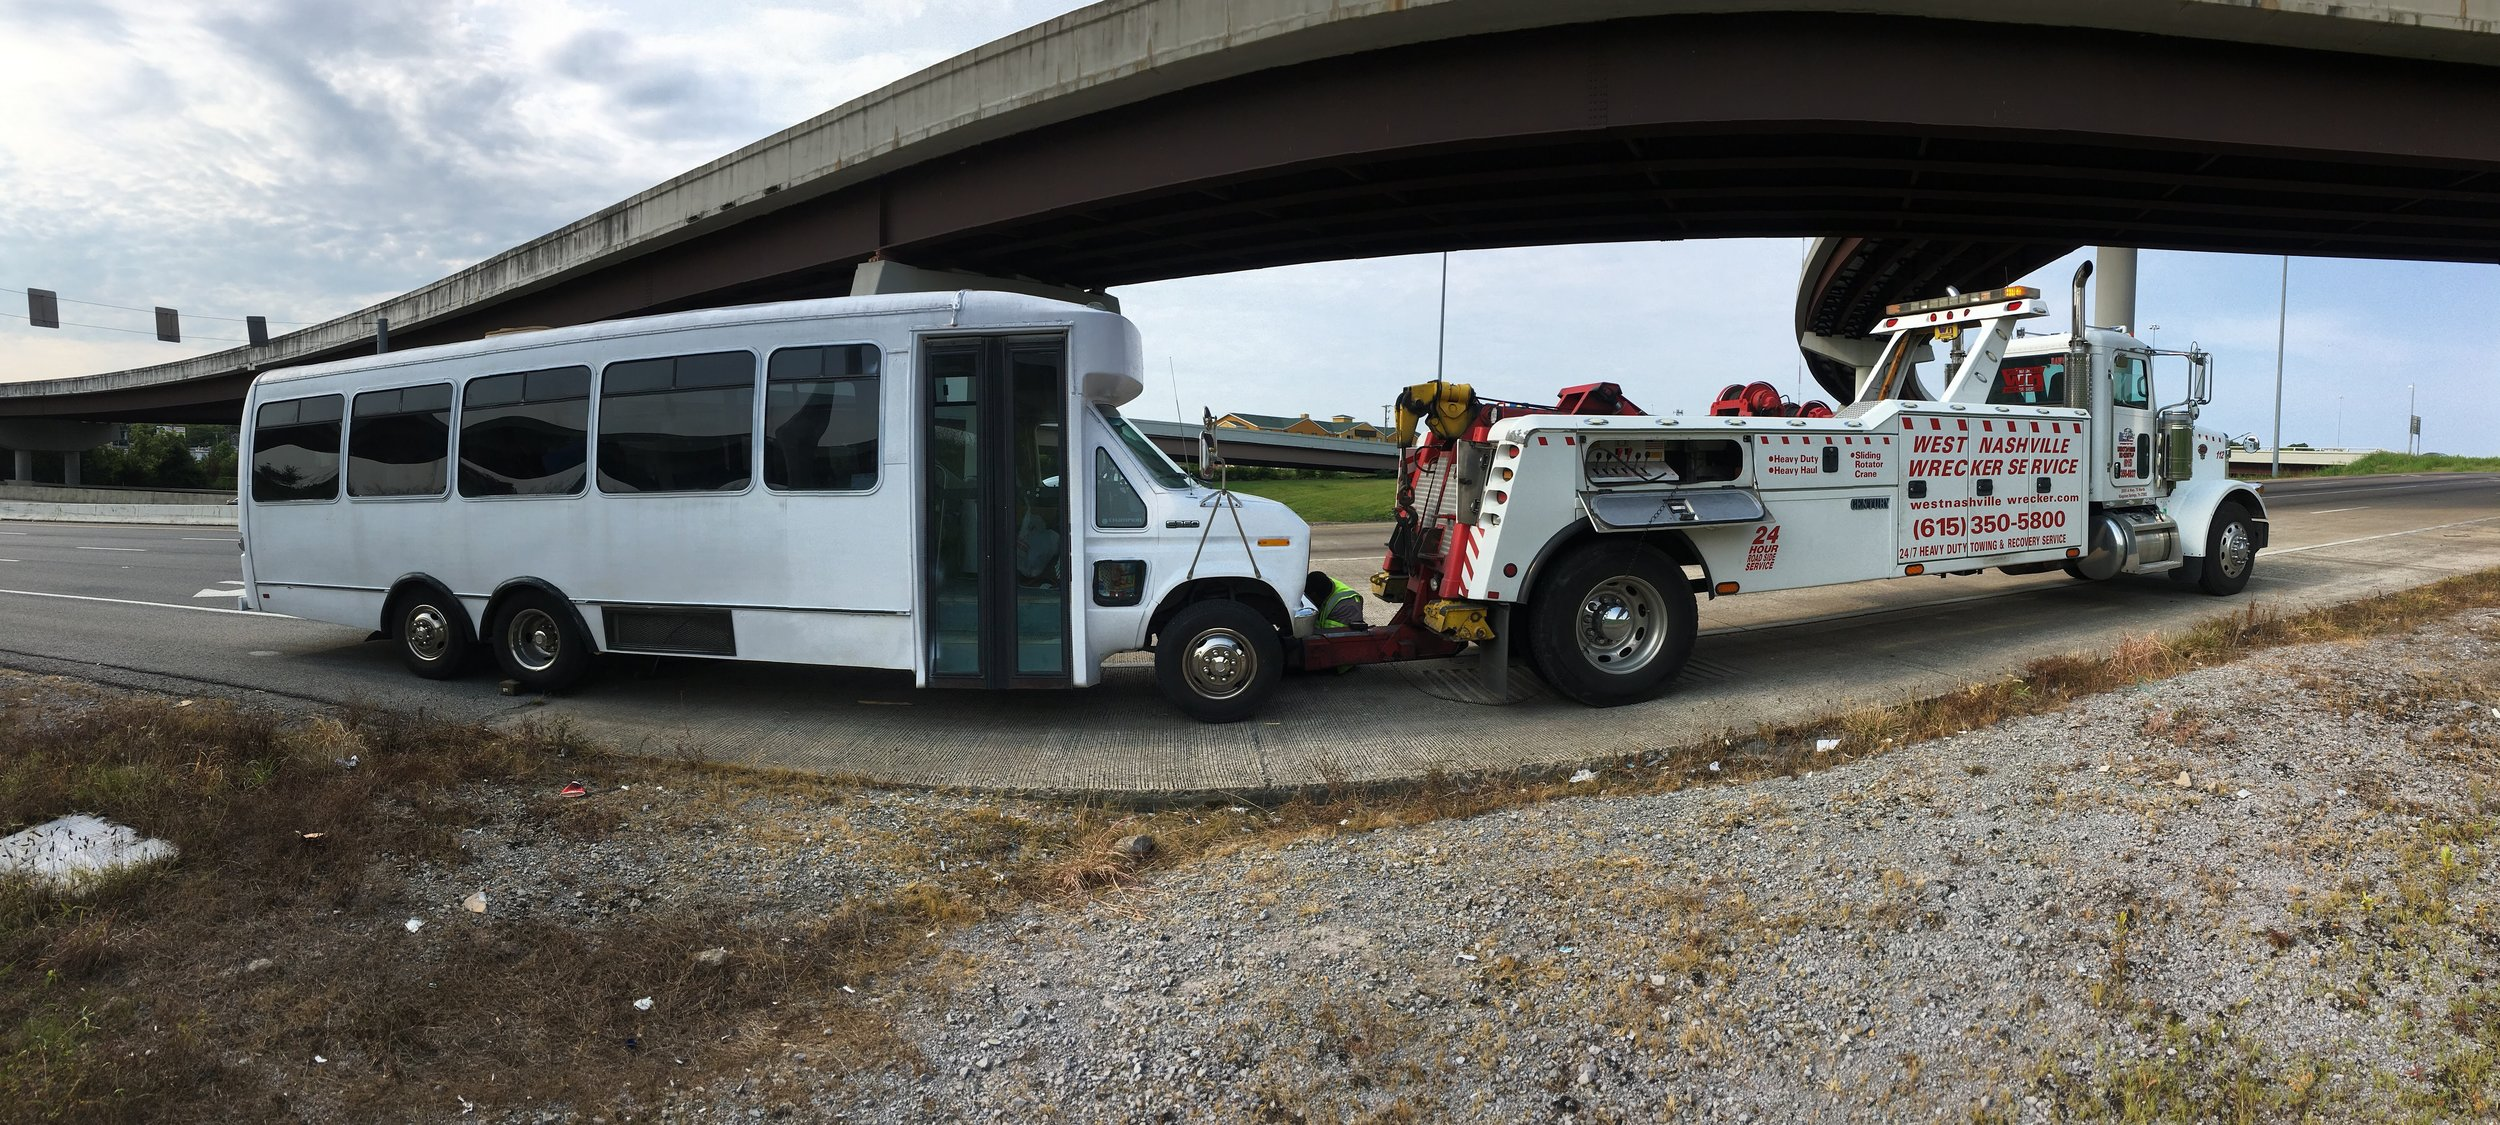 That time when the drive shaft on our old bus busted in Nashville.